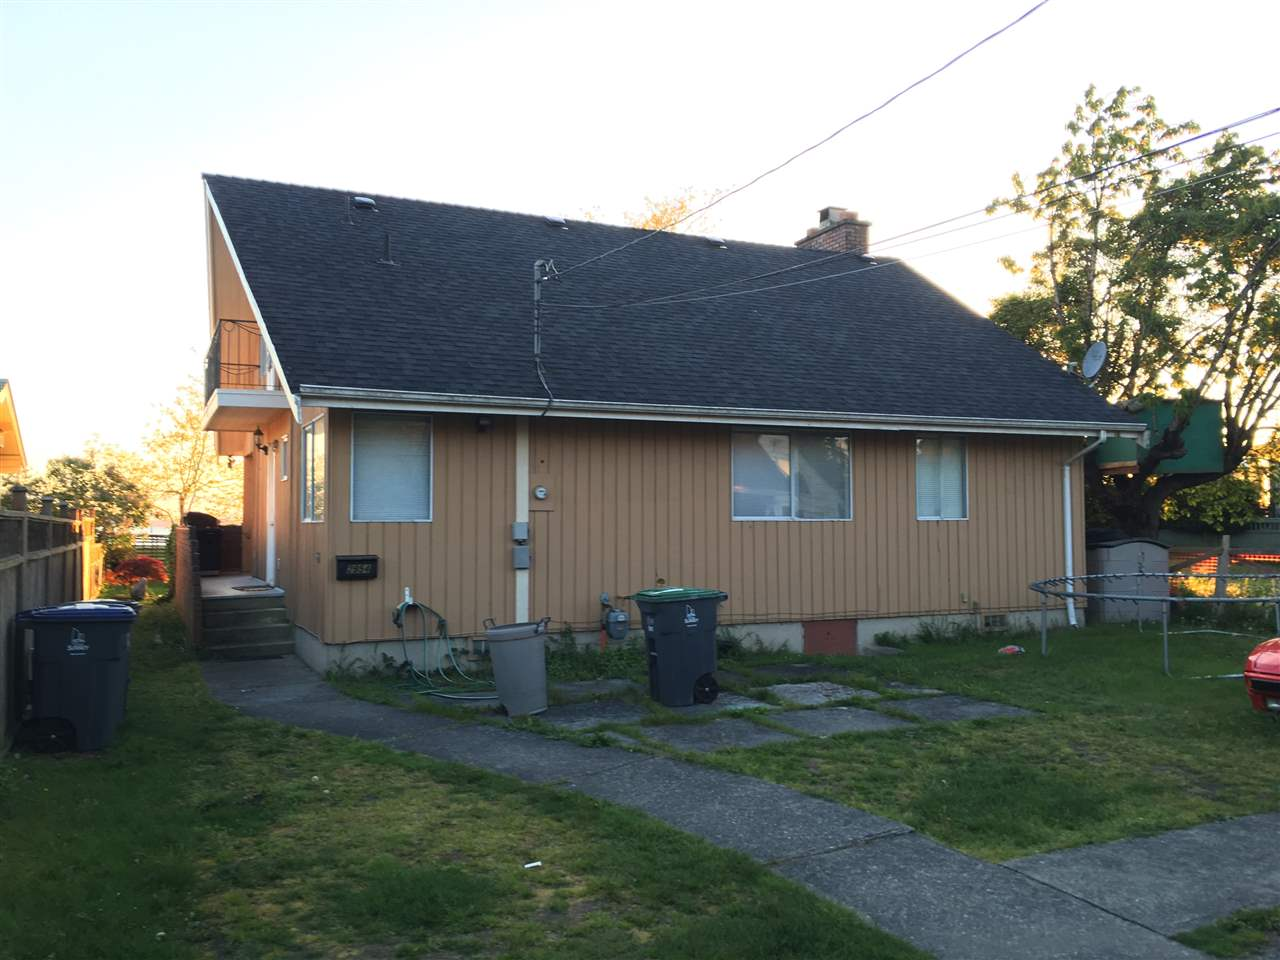 Photo 6: 2954 O'HARA LANE in Surrey: Crescent Bch Ocean Pk. House for sale (South Surrey White Rock)  : MLS® # R2065012